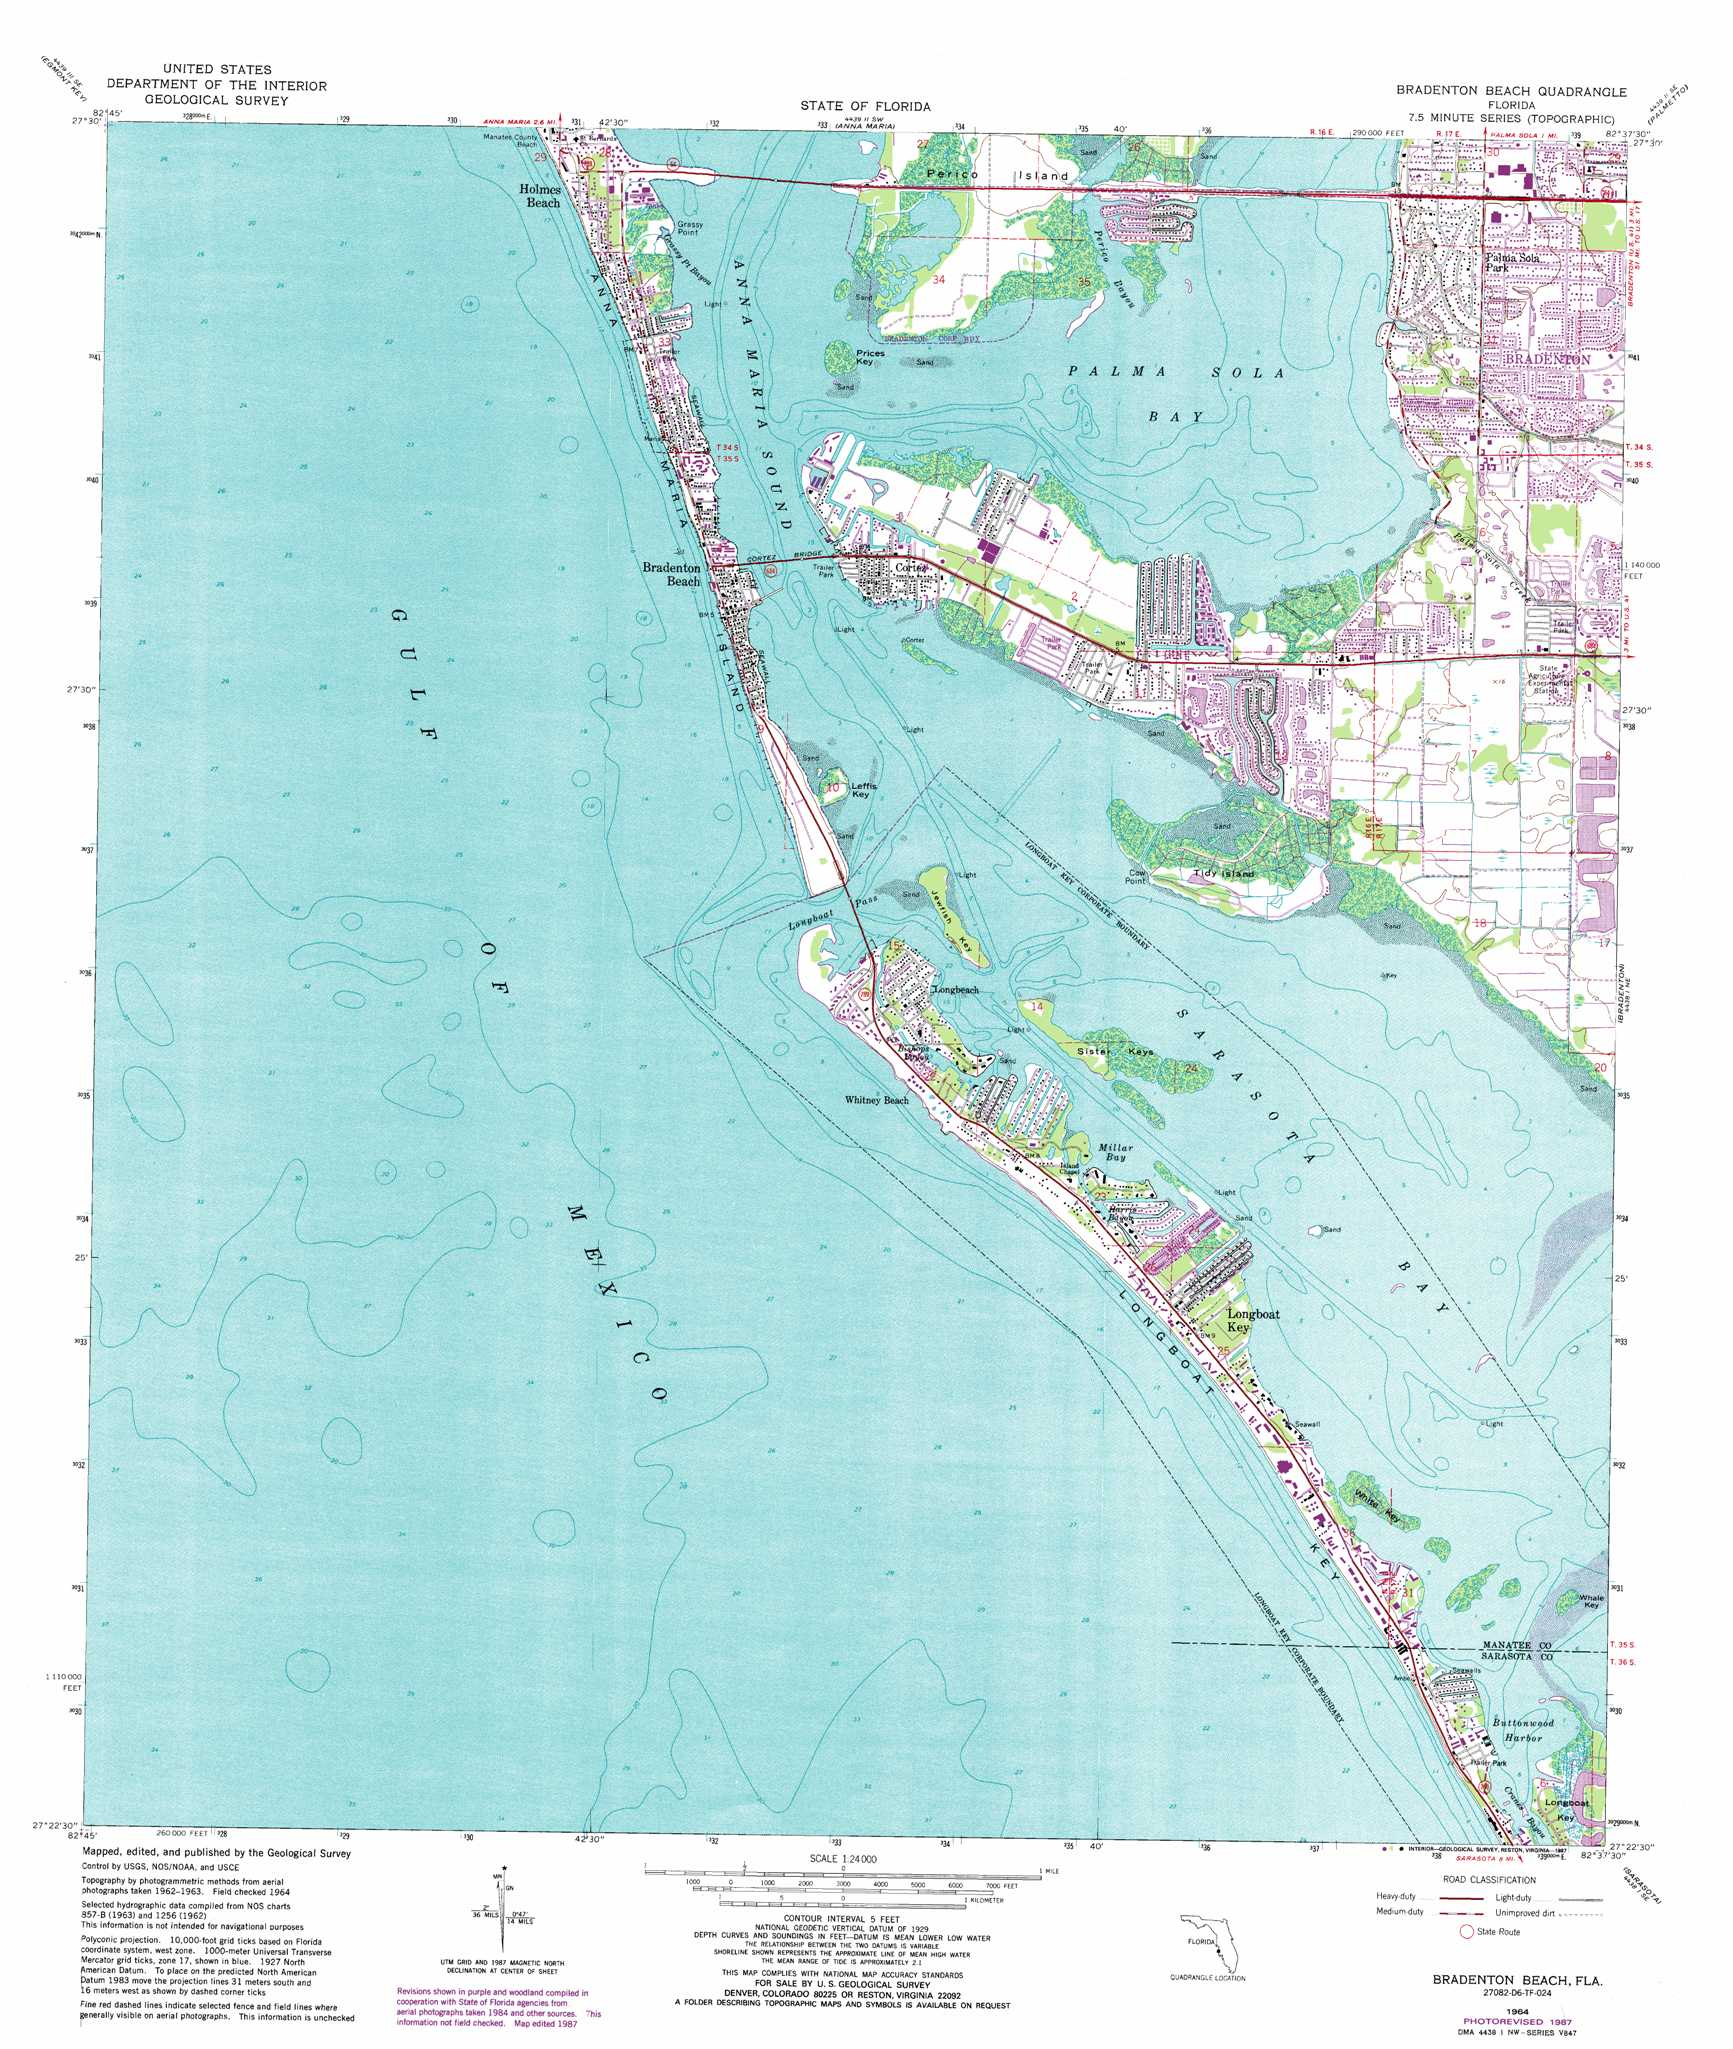 Bradenton Beach Topographic Map FL USGS Topo Quad D - Florida map ruskin